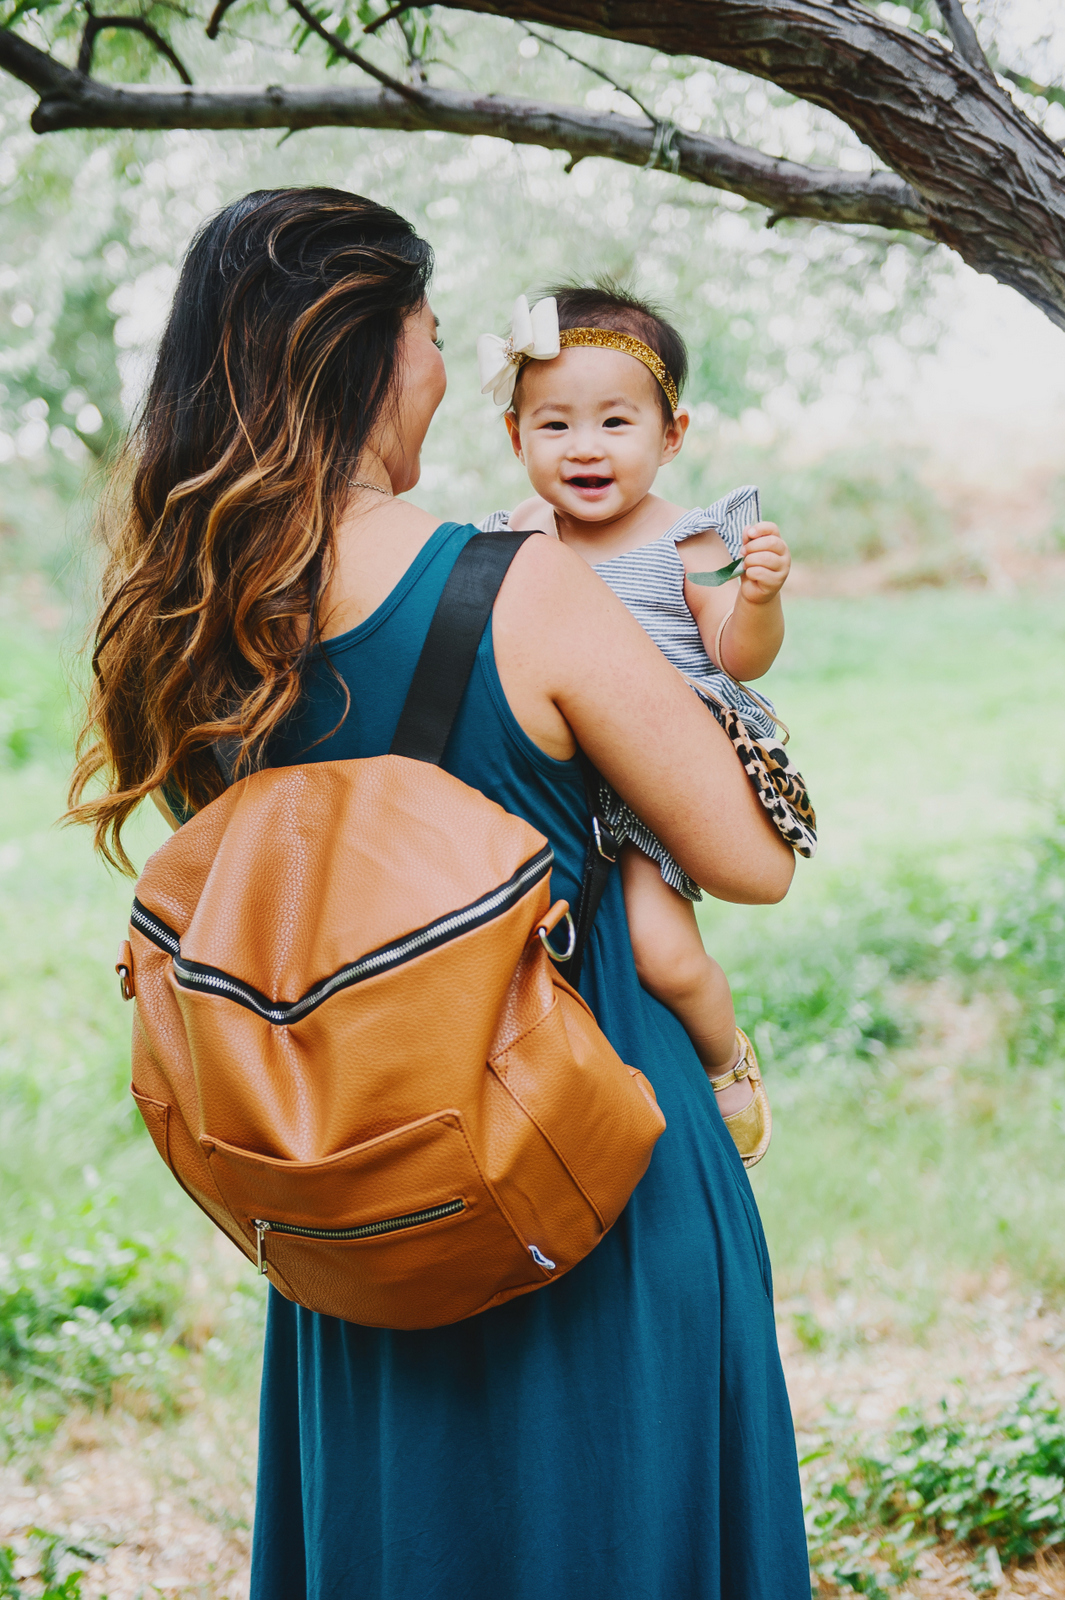 Leather diaper bag from Fawn Designs